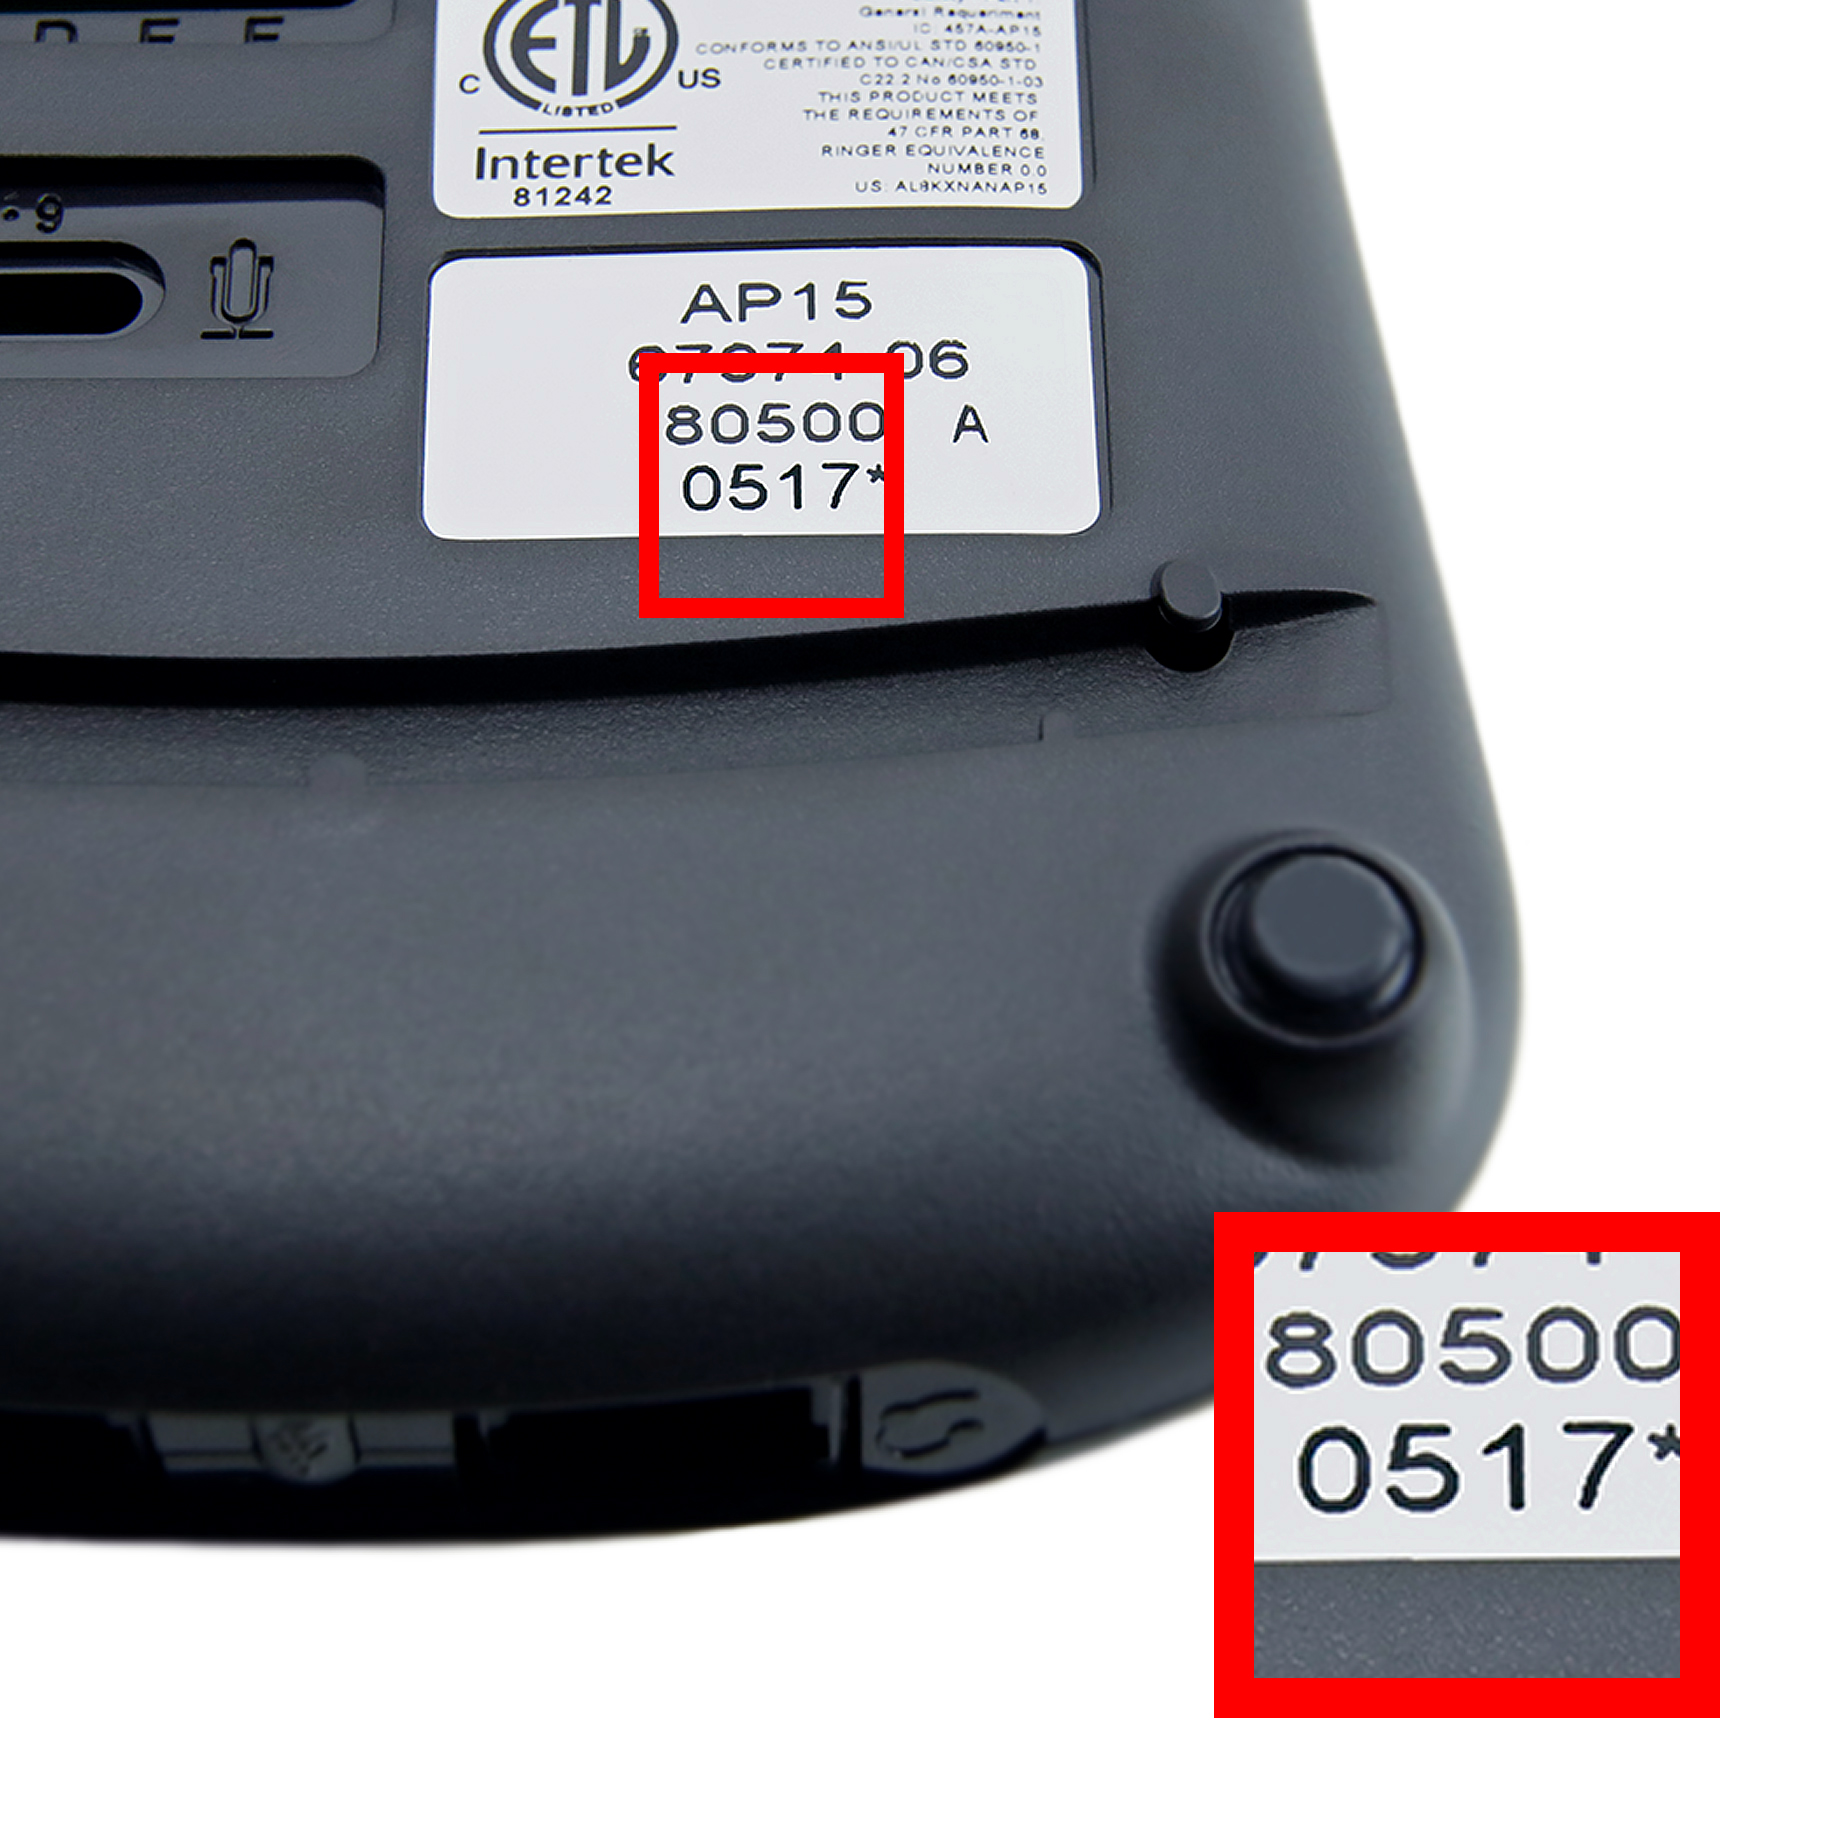 Image of the AP15 Date Code location